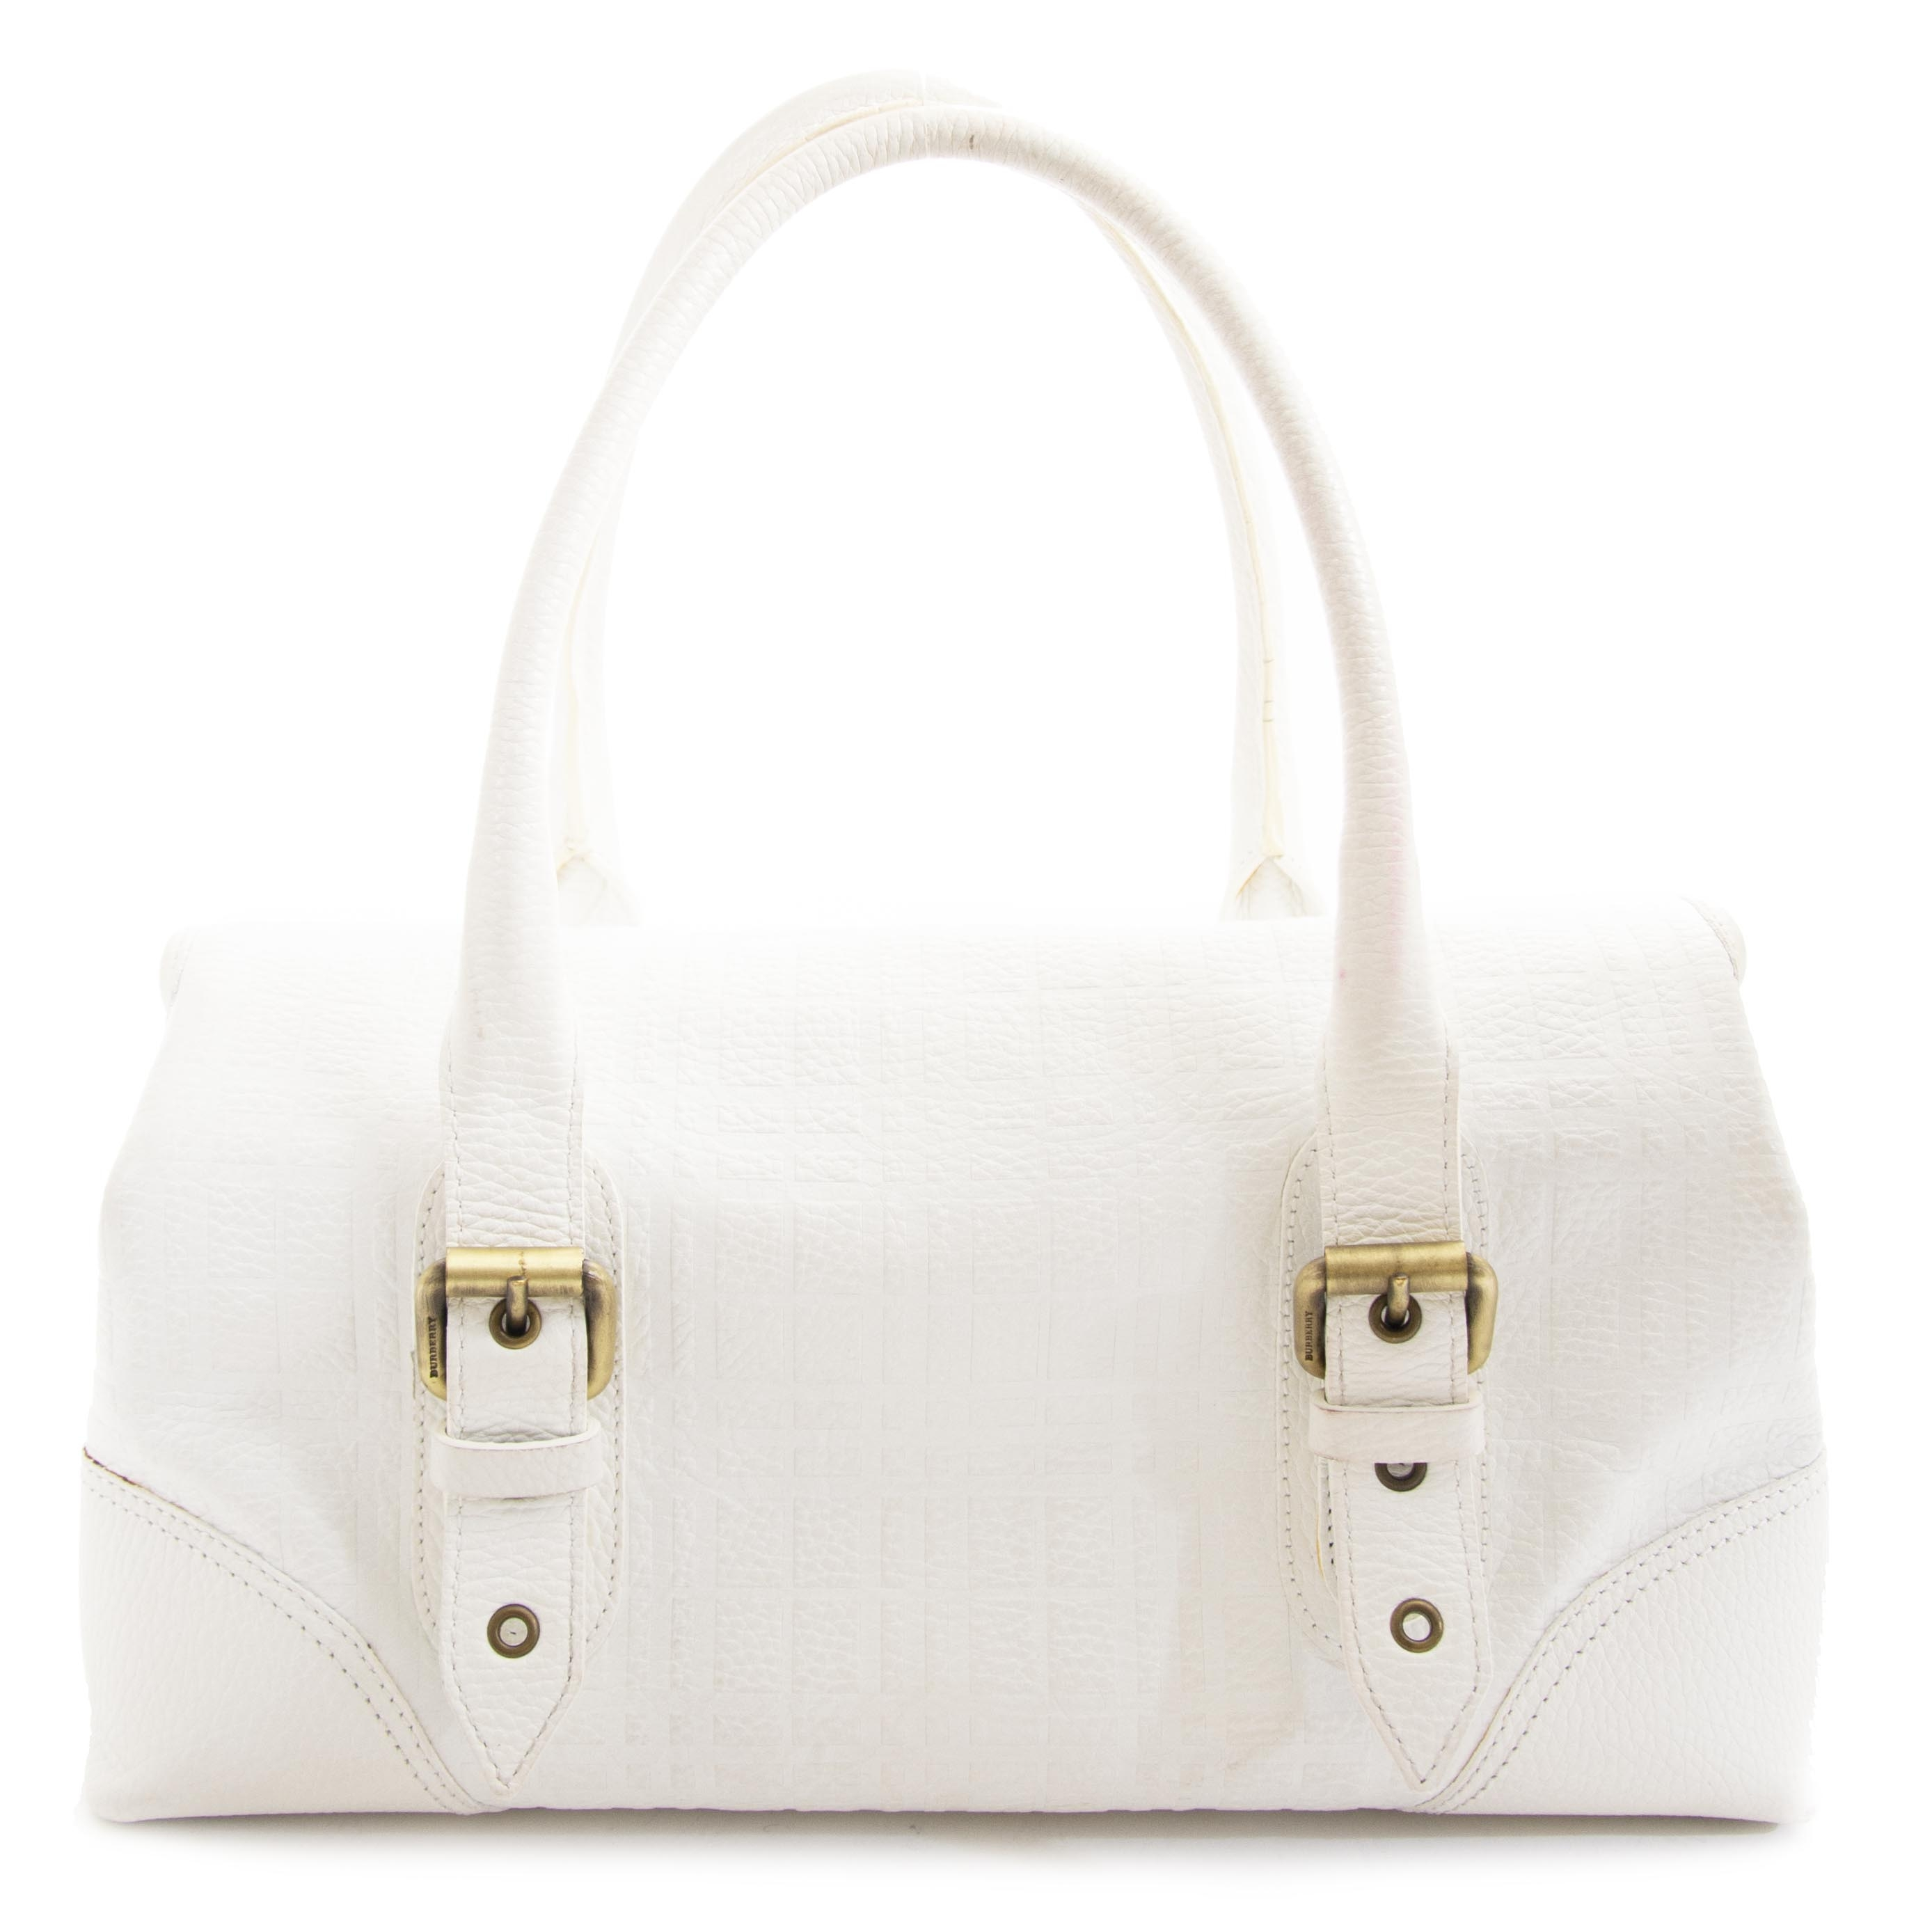 acheter en ligne seconde main Burberry White Shoulder Bag